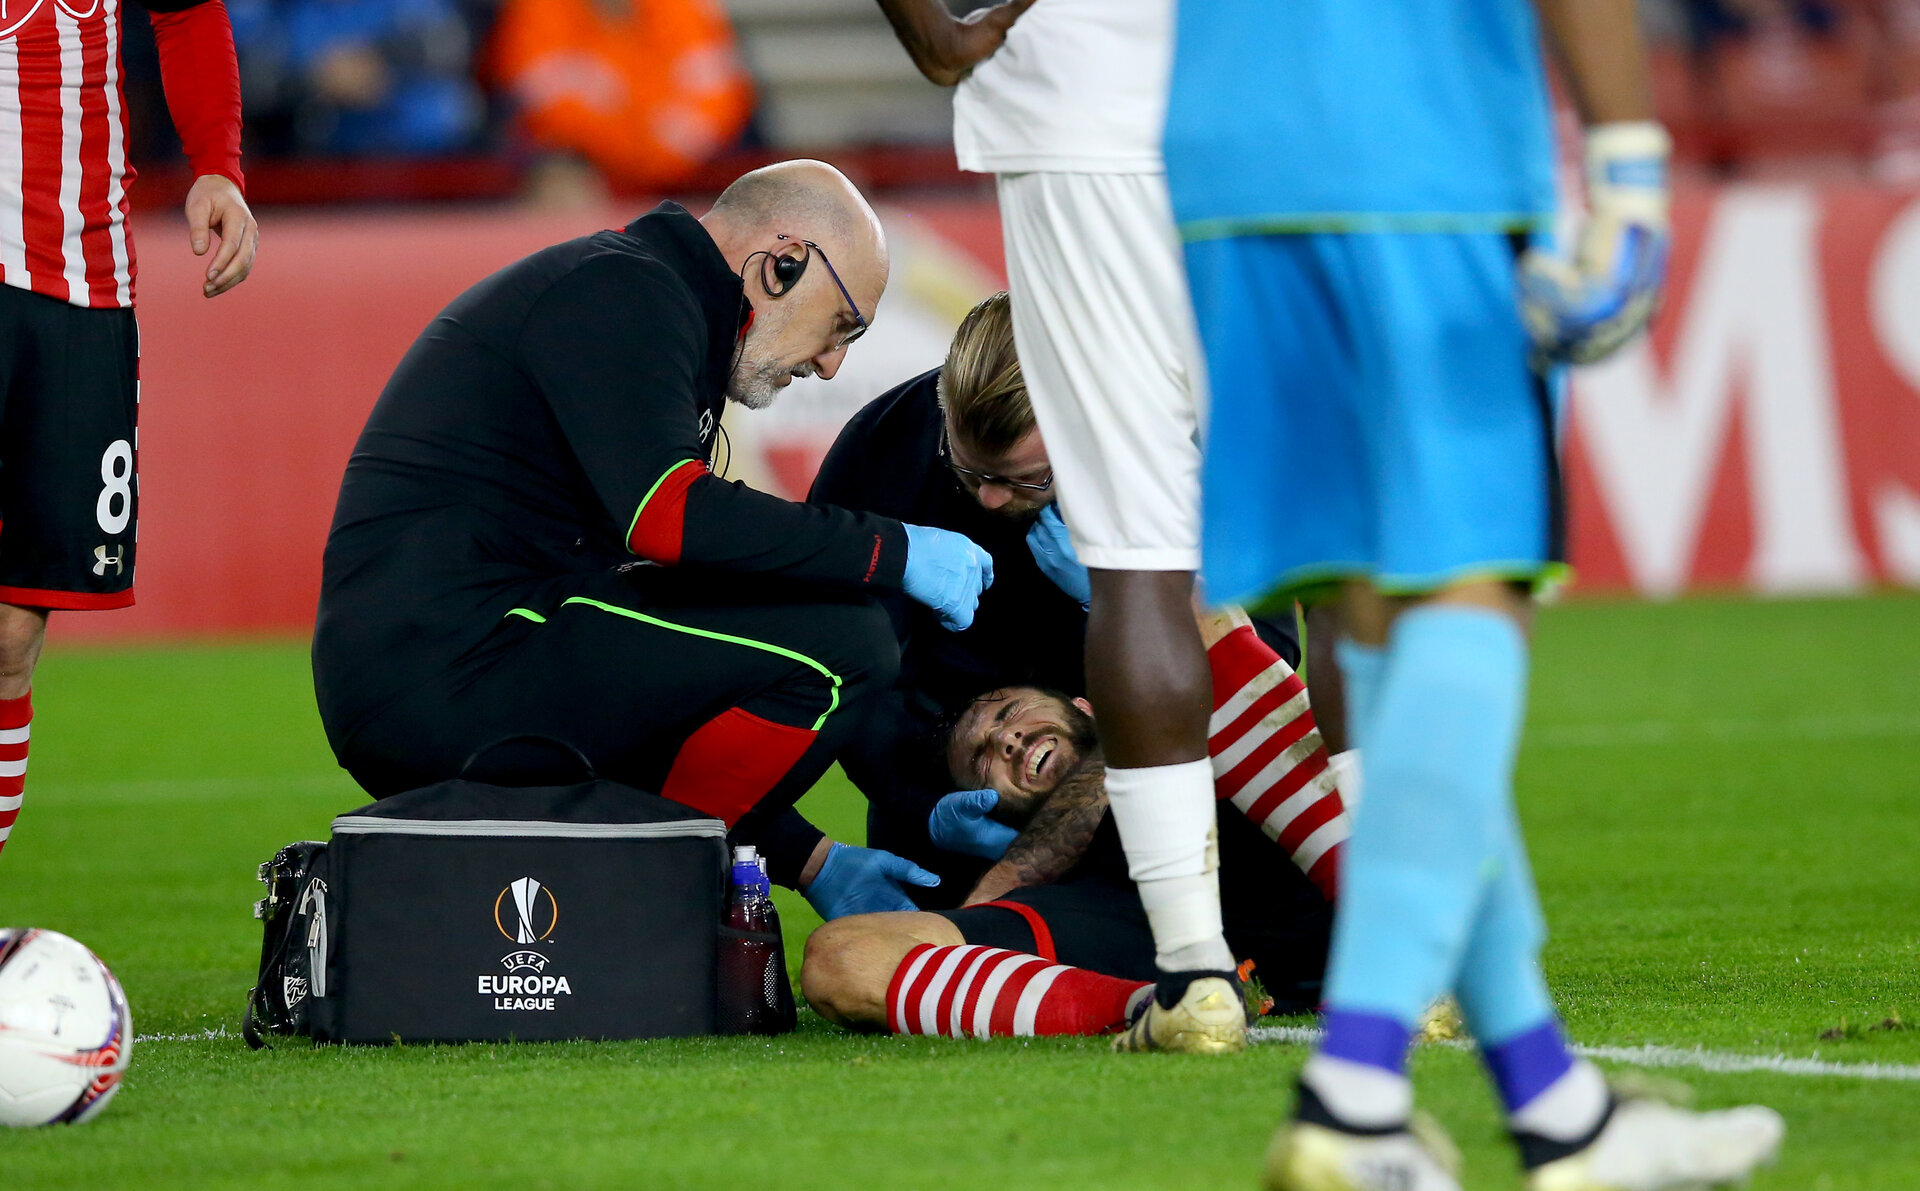 Charlie Austin down injured  during the UEFA Europa League match between Southampton and Hapoel Be'er Sheva F.C. at St Mary's Stadium, Southampton, England on 8 December 2016. Photo by Matt Watson/SFC/Digital South.